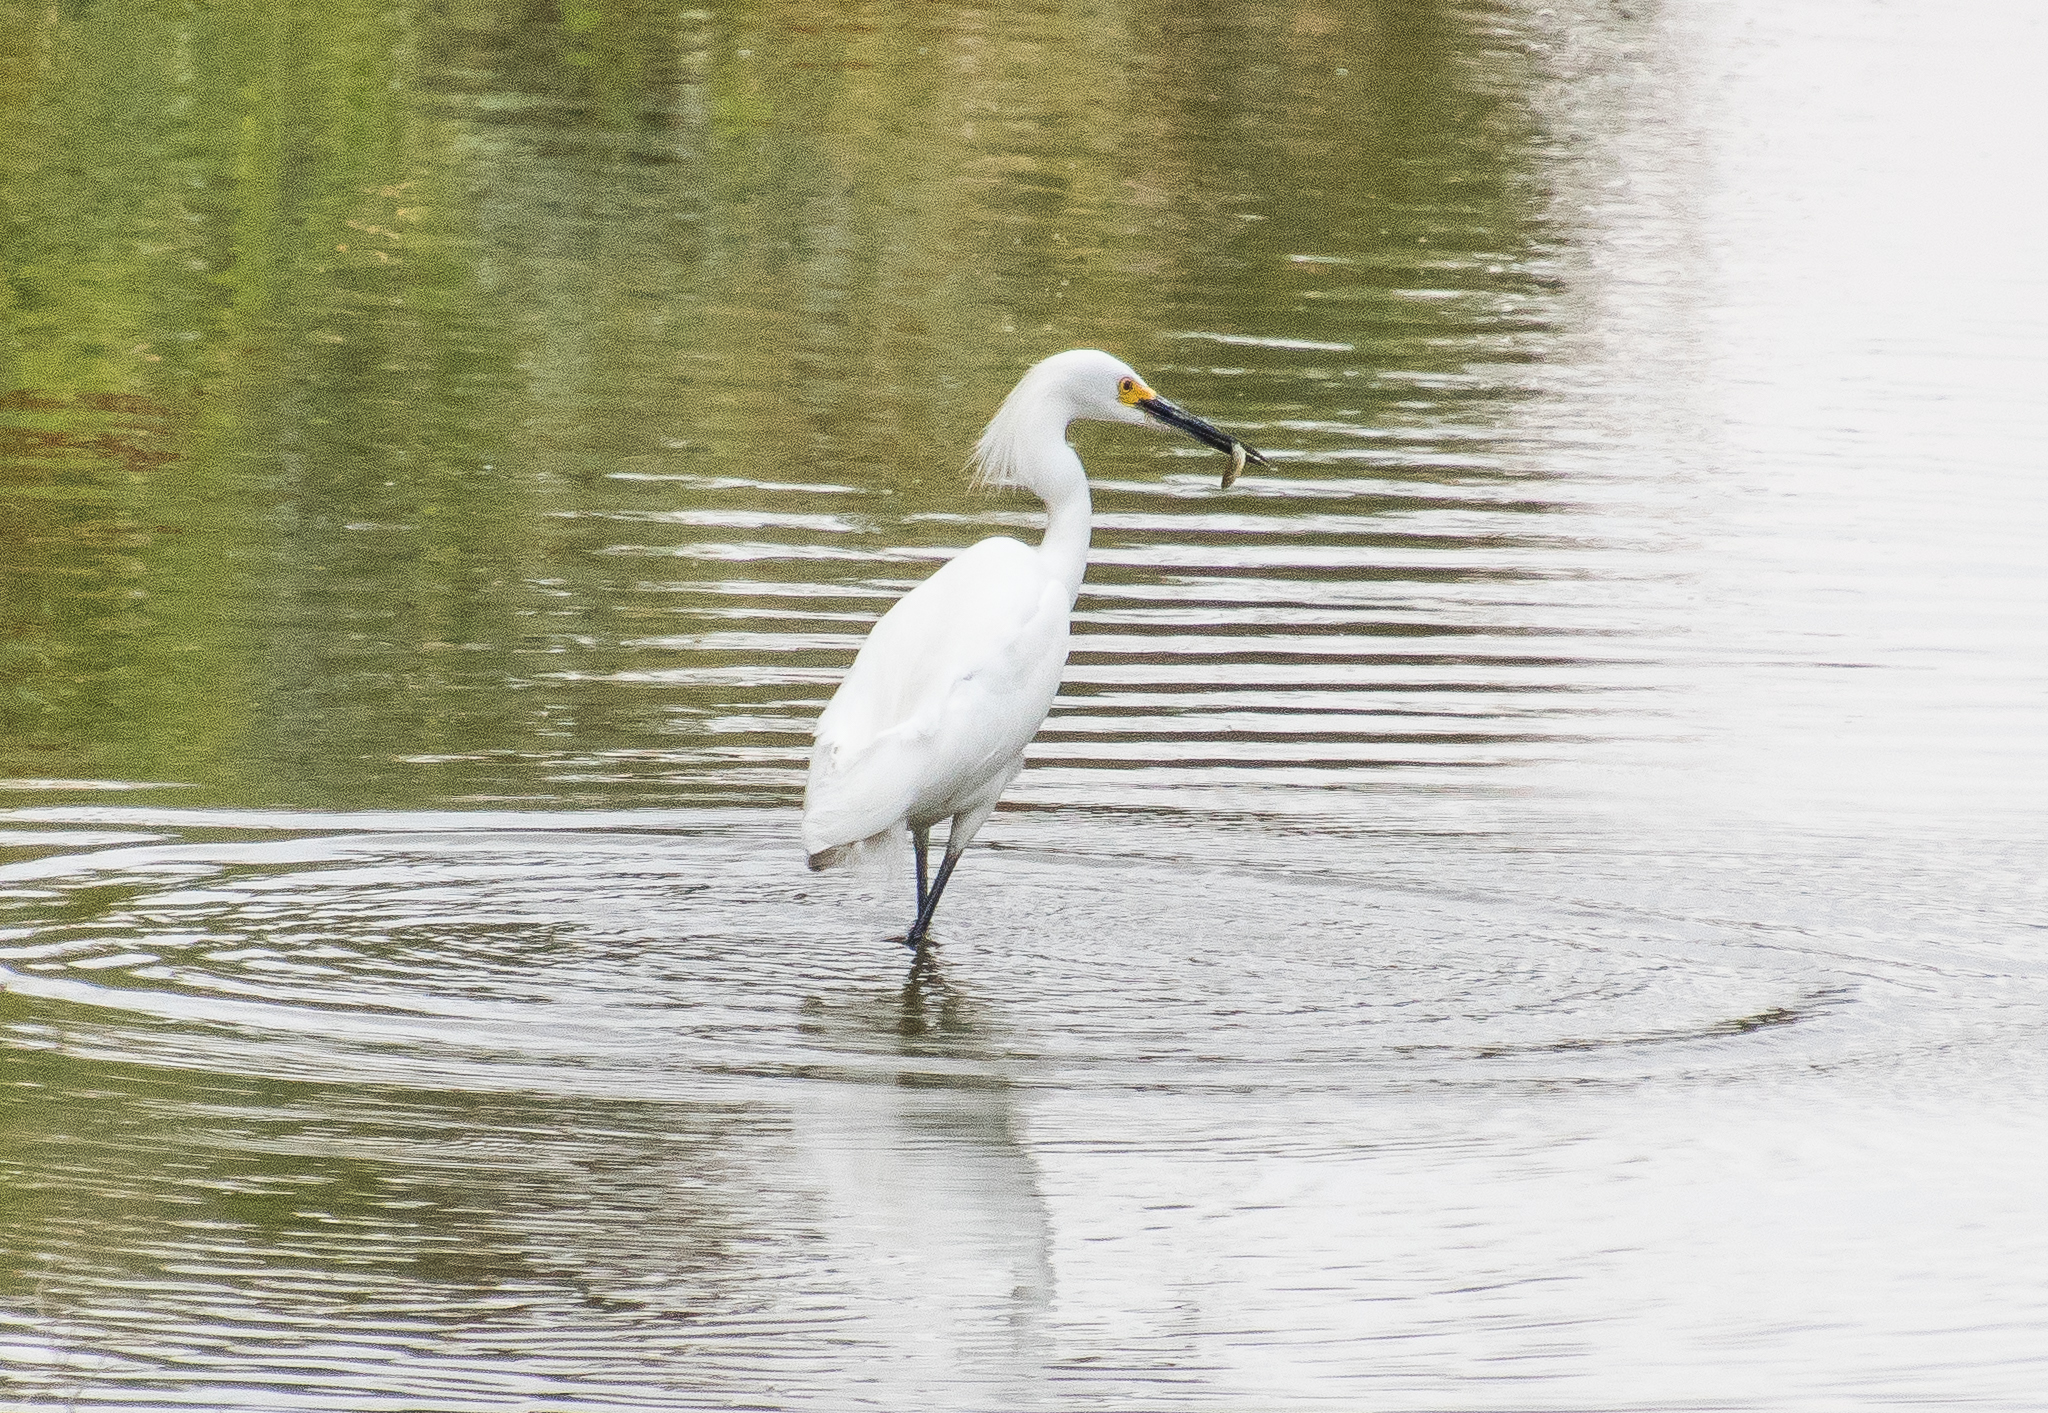 Snowy Egret with its catch